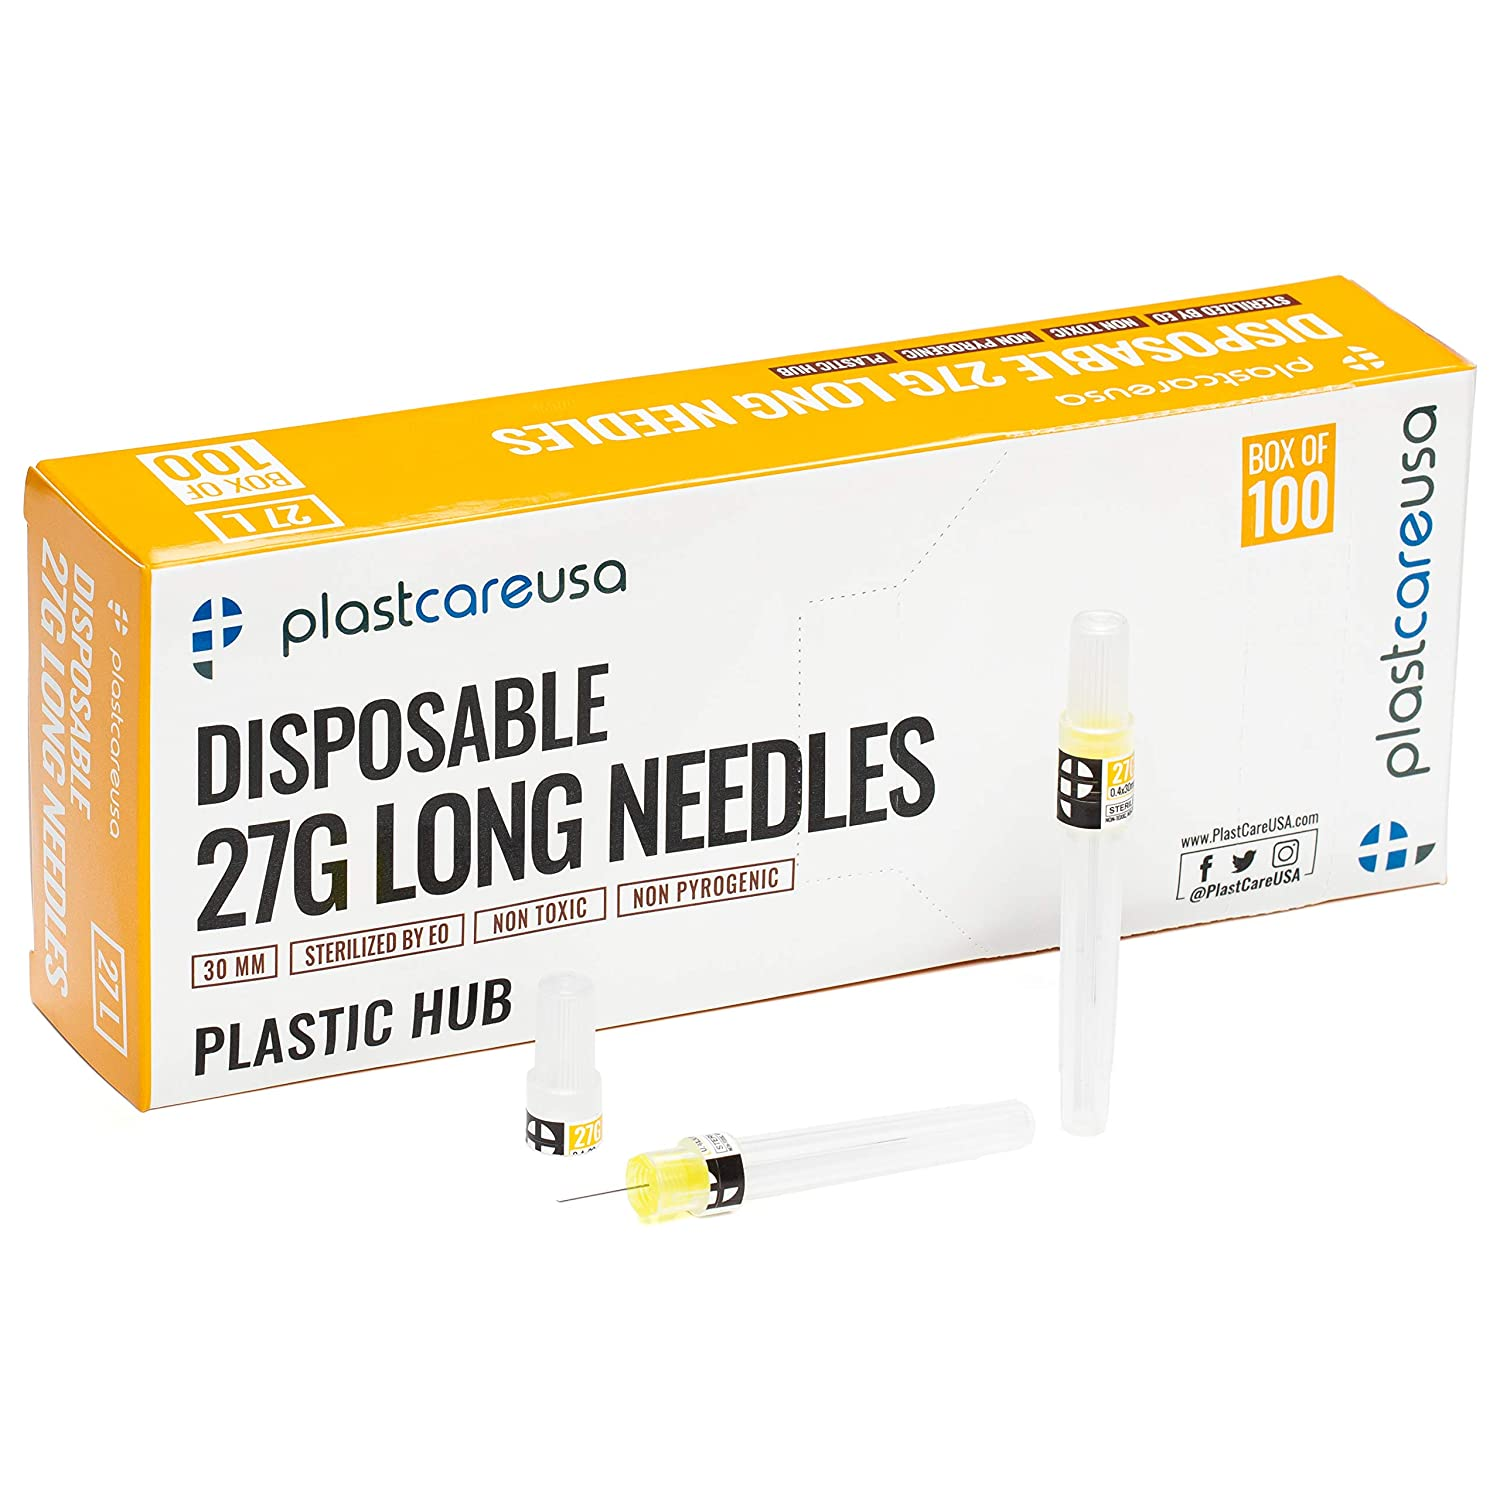 100 Disposable Dental 1 year warranty Needles in Long Super-cheap Box 27G Perforated